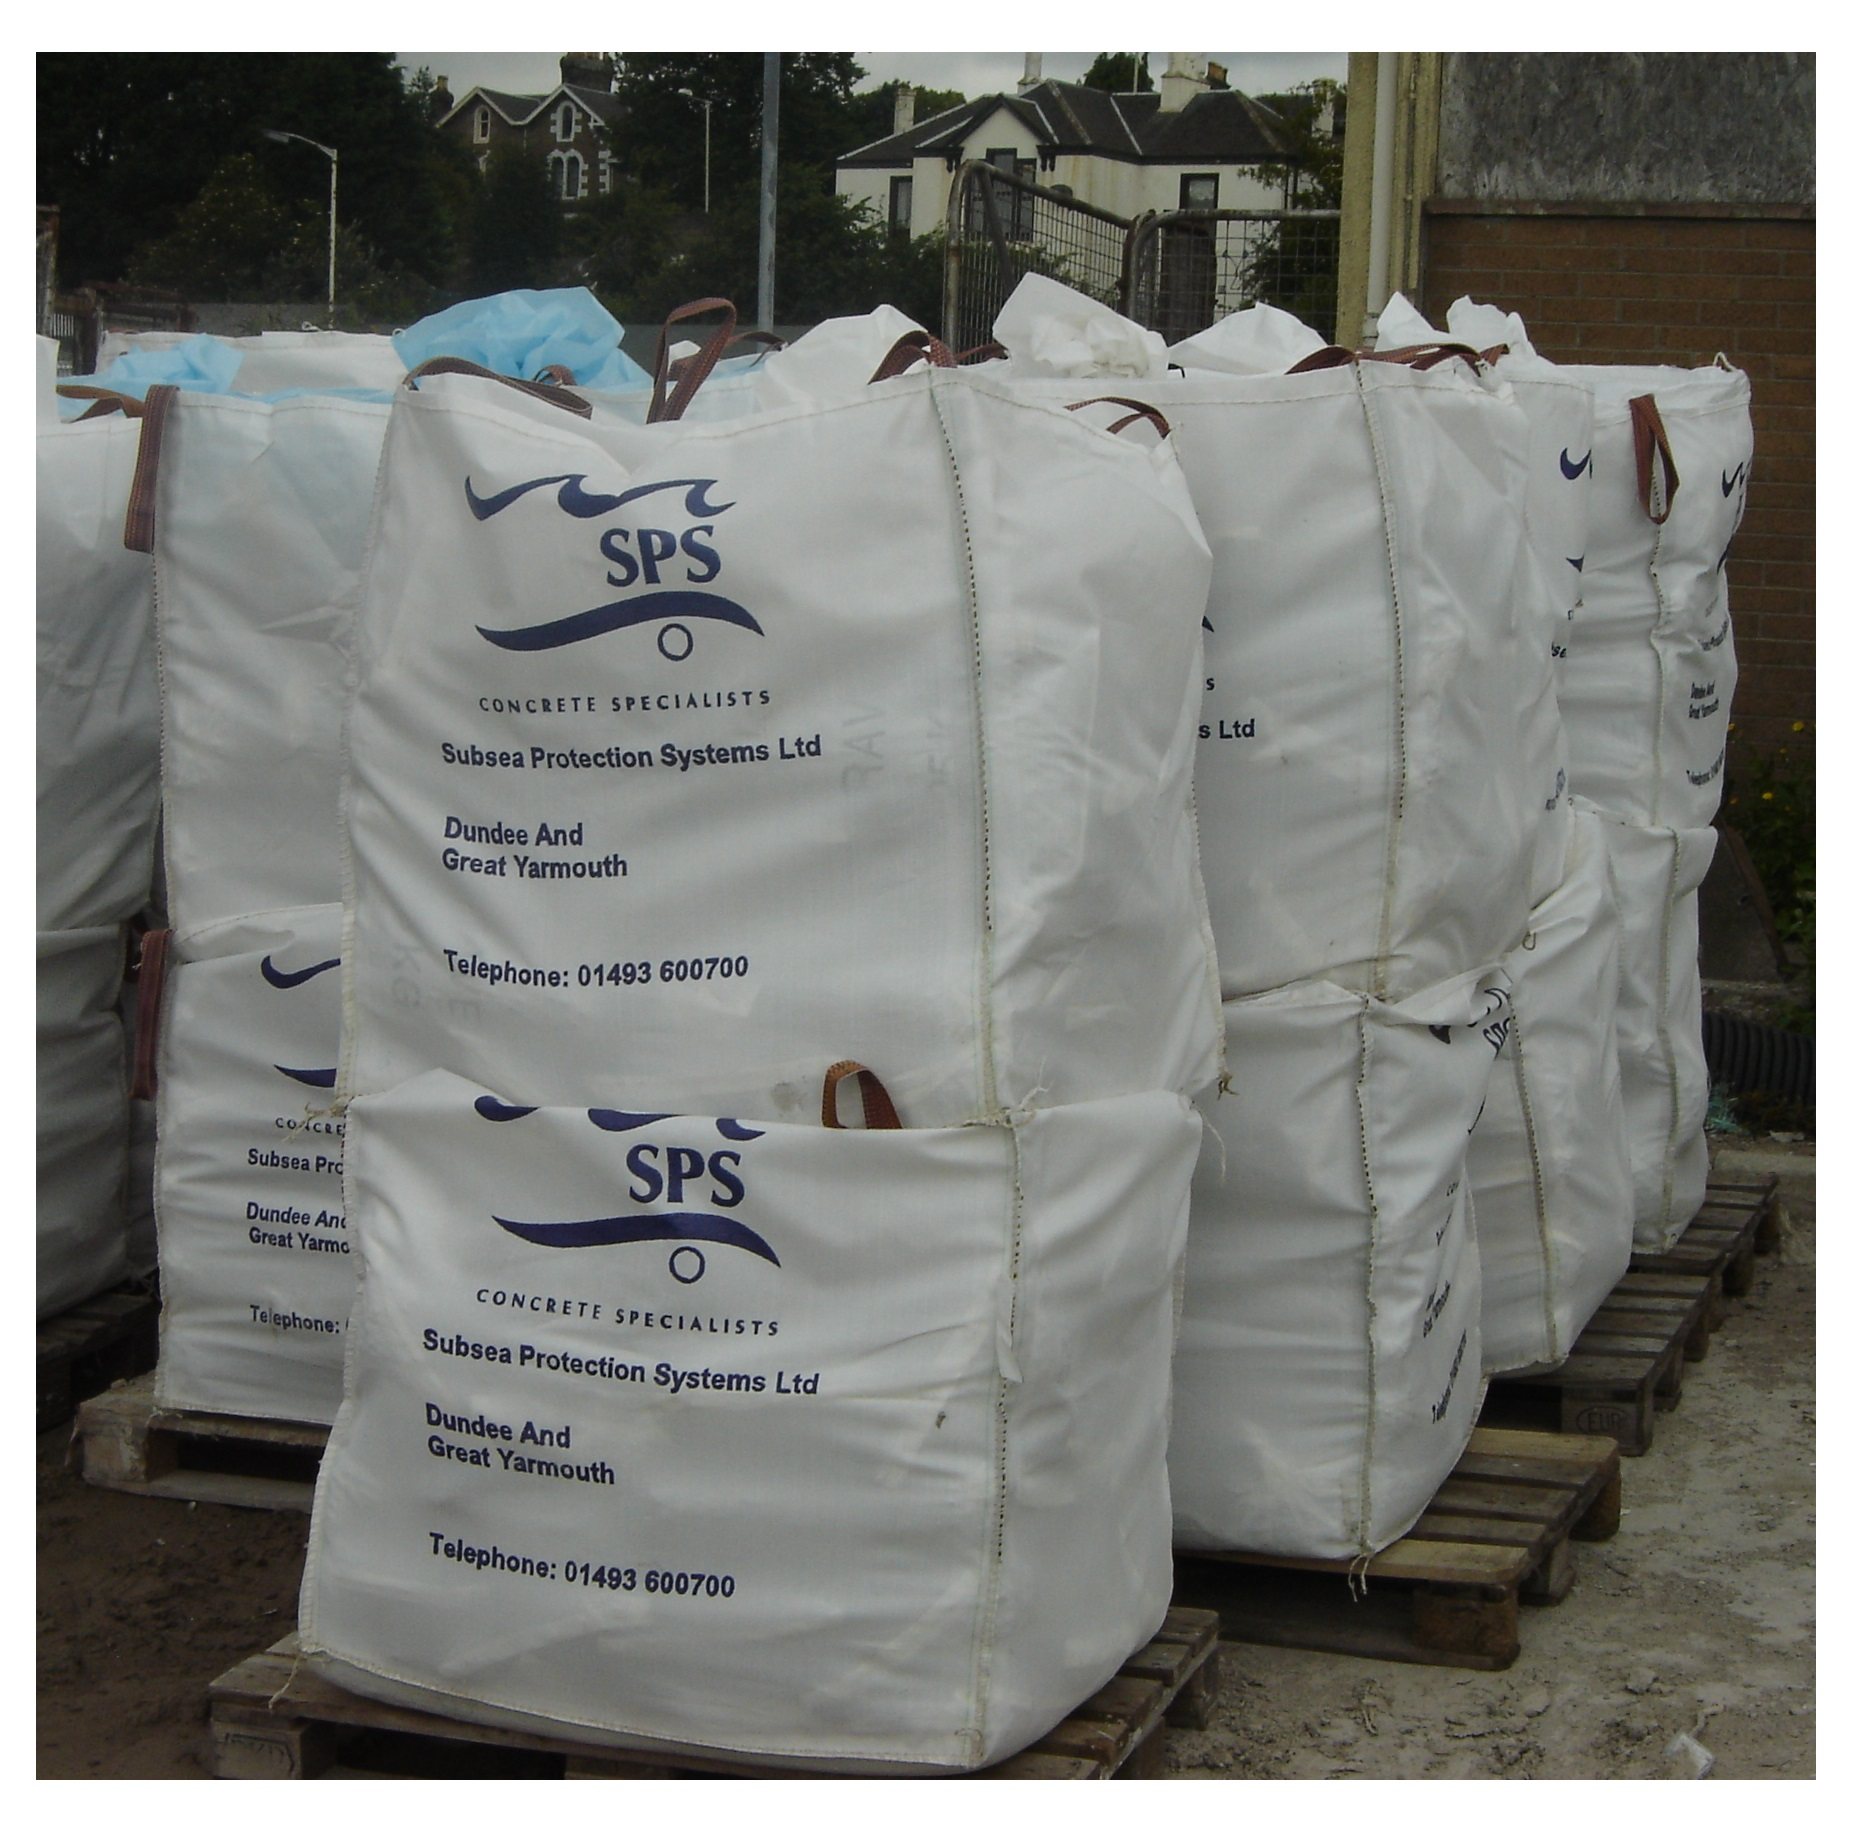 Grout, Sand and Gravel Bags